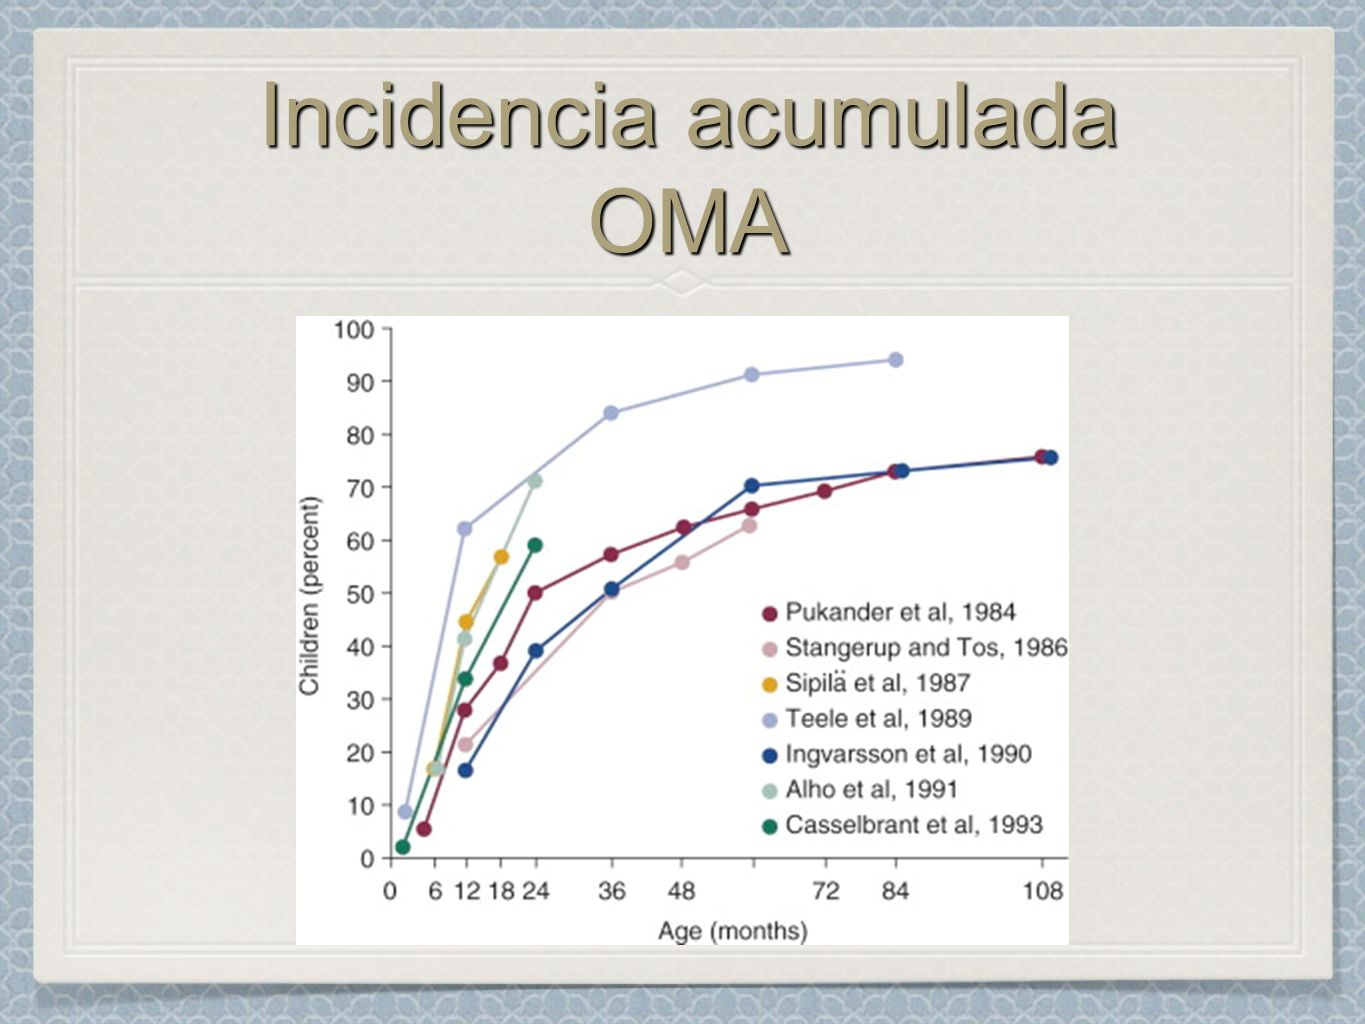 Incidencia acumulada OMA